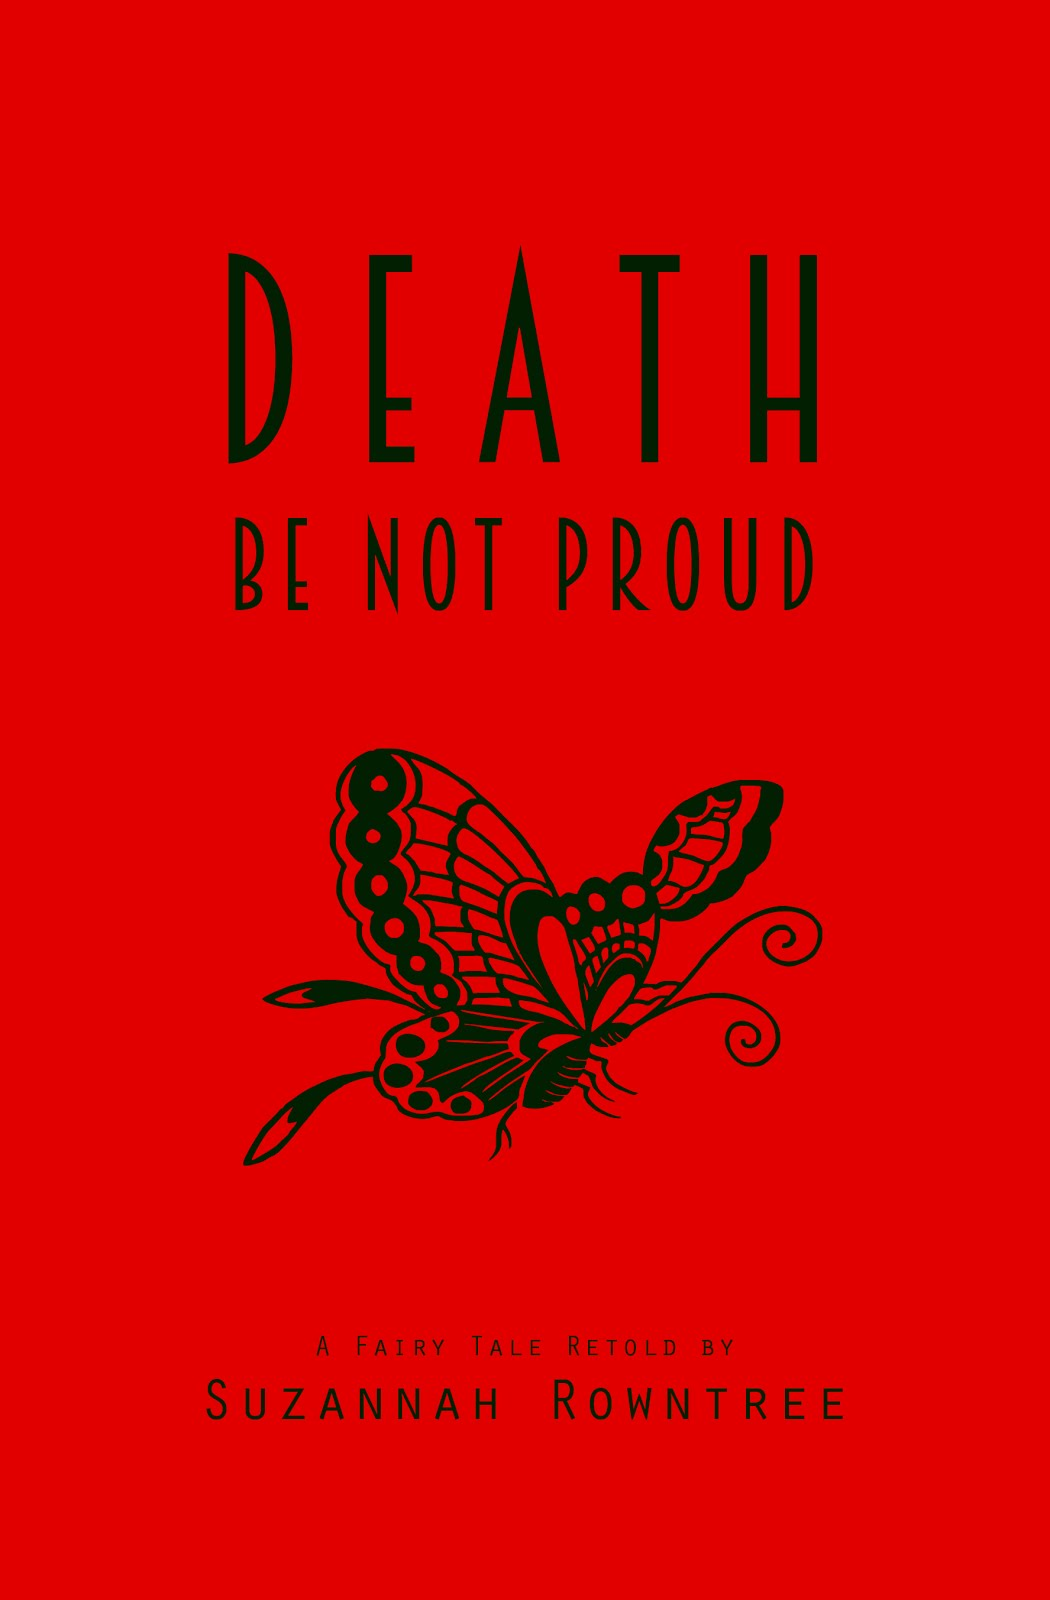 vintage novels death be not proud cover reveal and release date as usual i started designing this cover on the side as i worked on the very first draft of the story in the end it went through many many more drafts